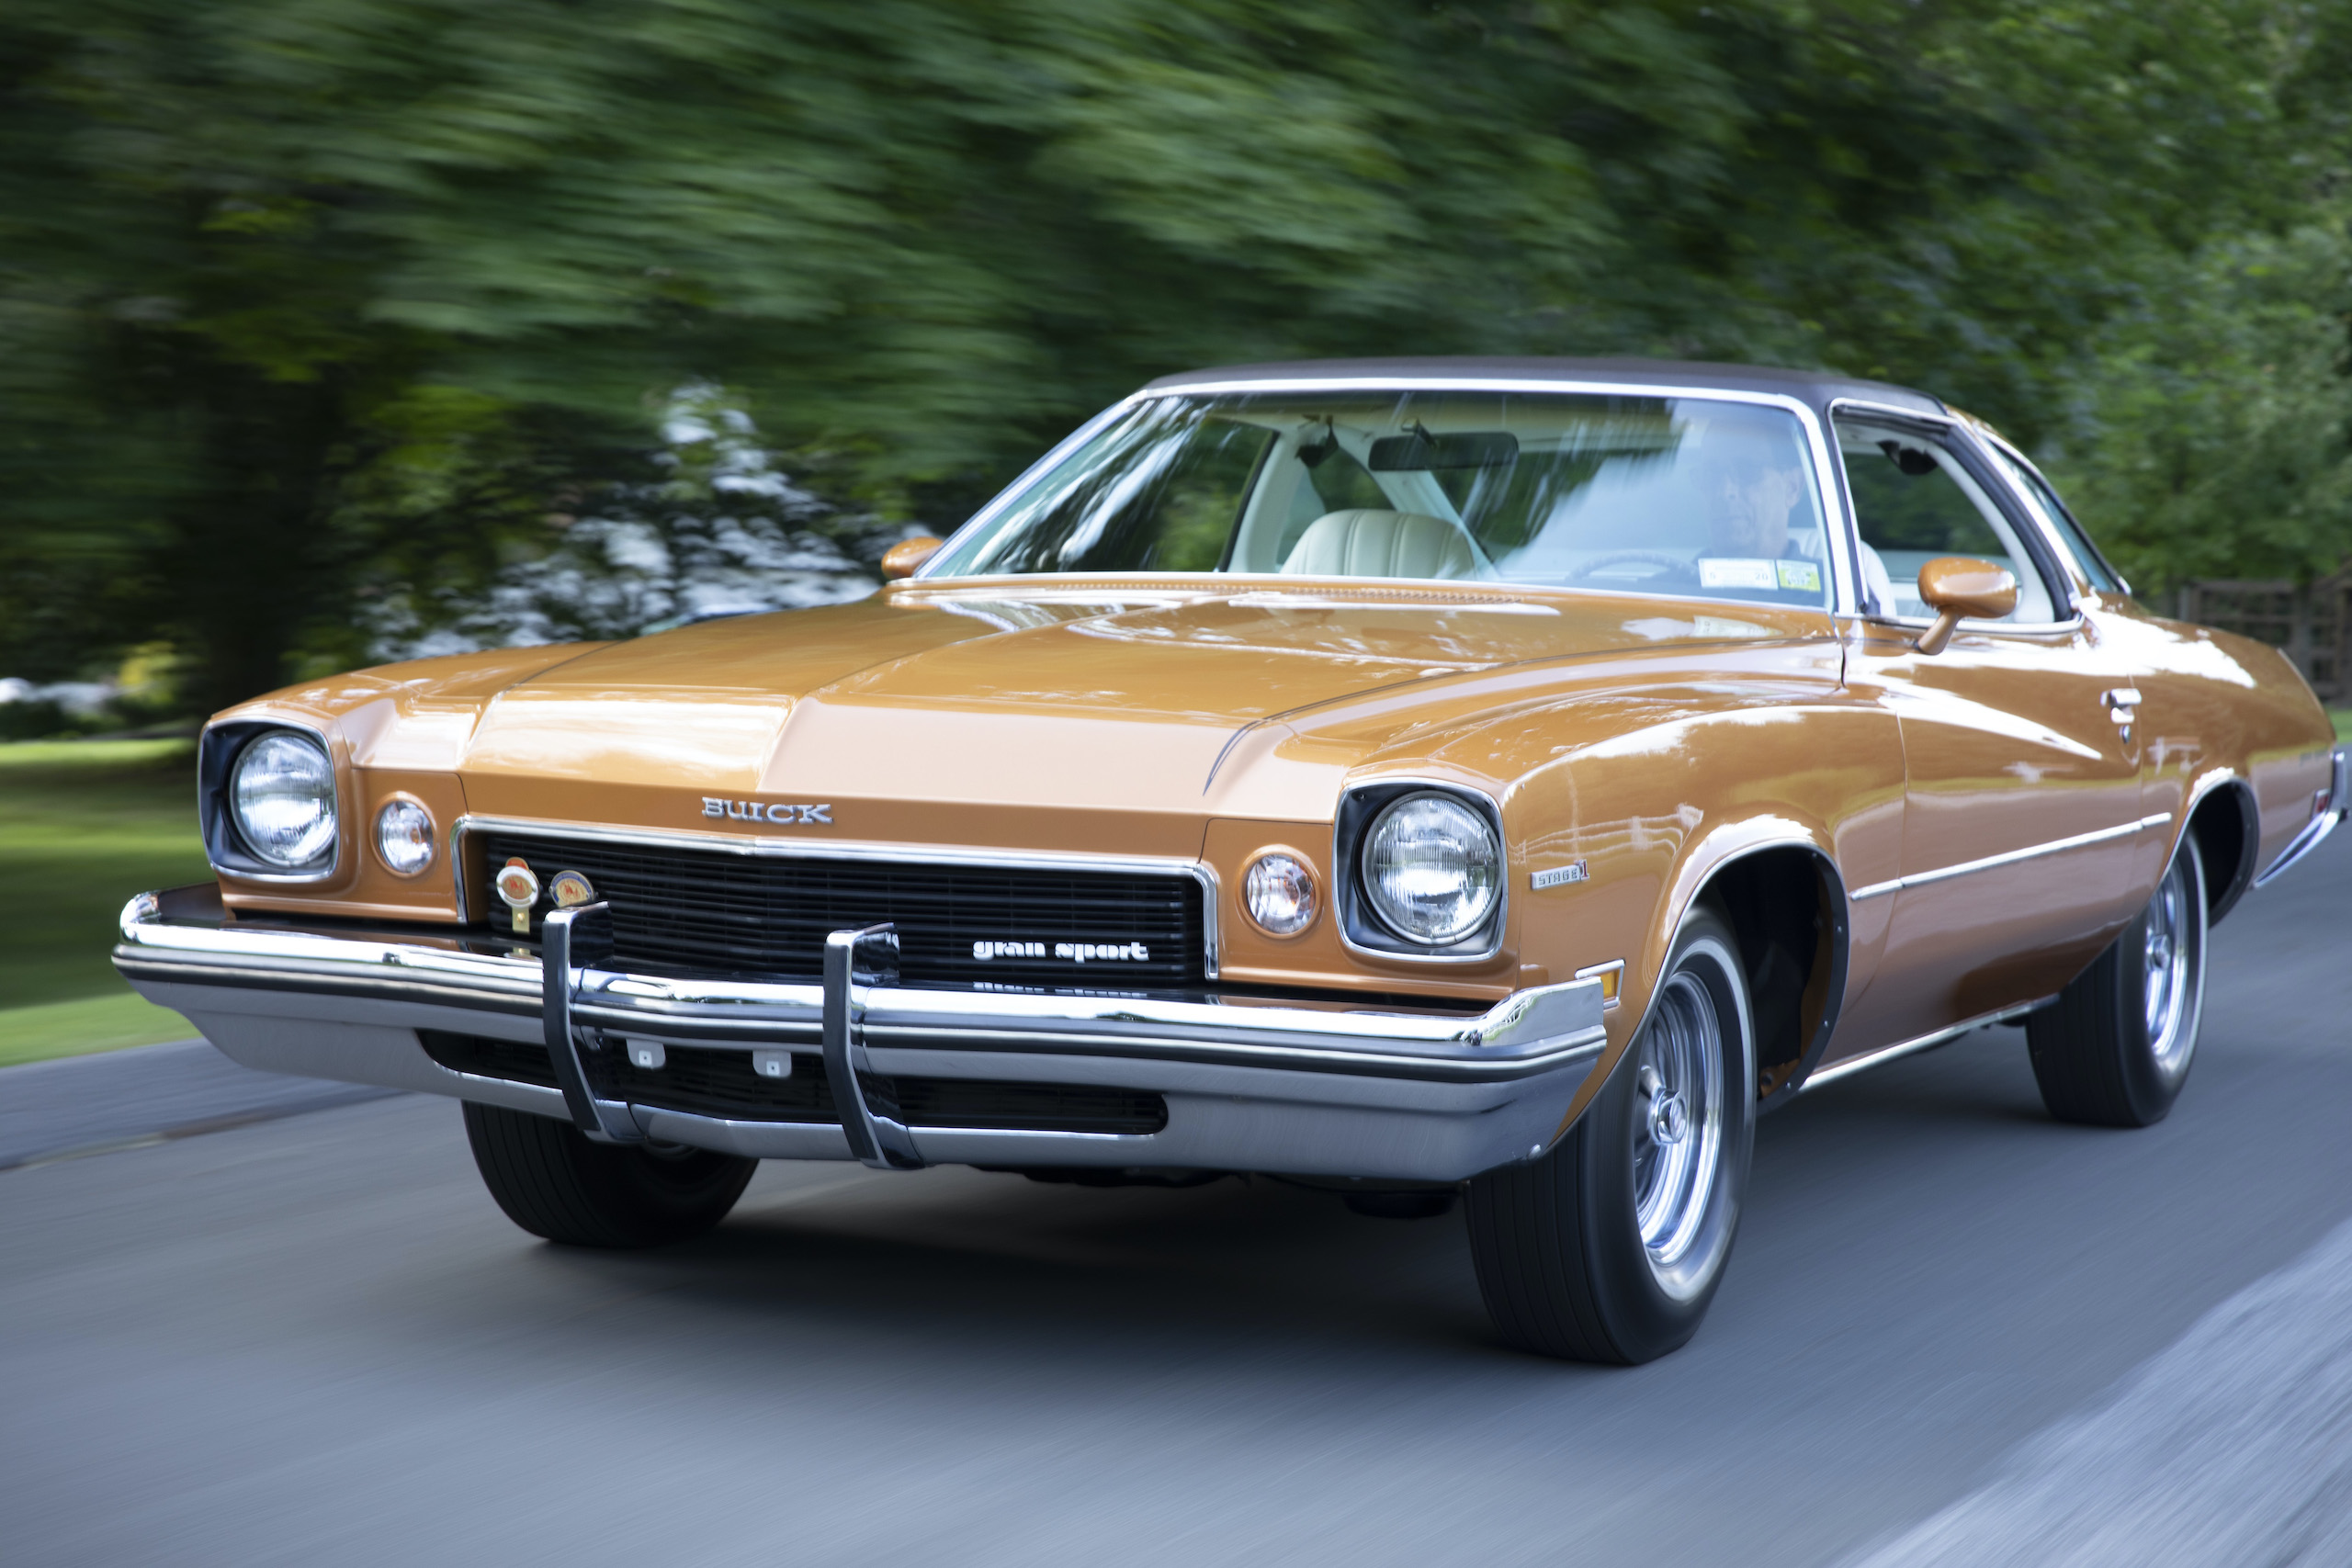 The 1973 Buick GS Stage 1 four-speed is a rare, forgotten muscle machine